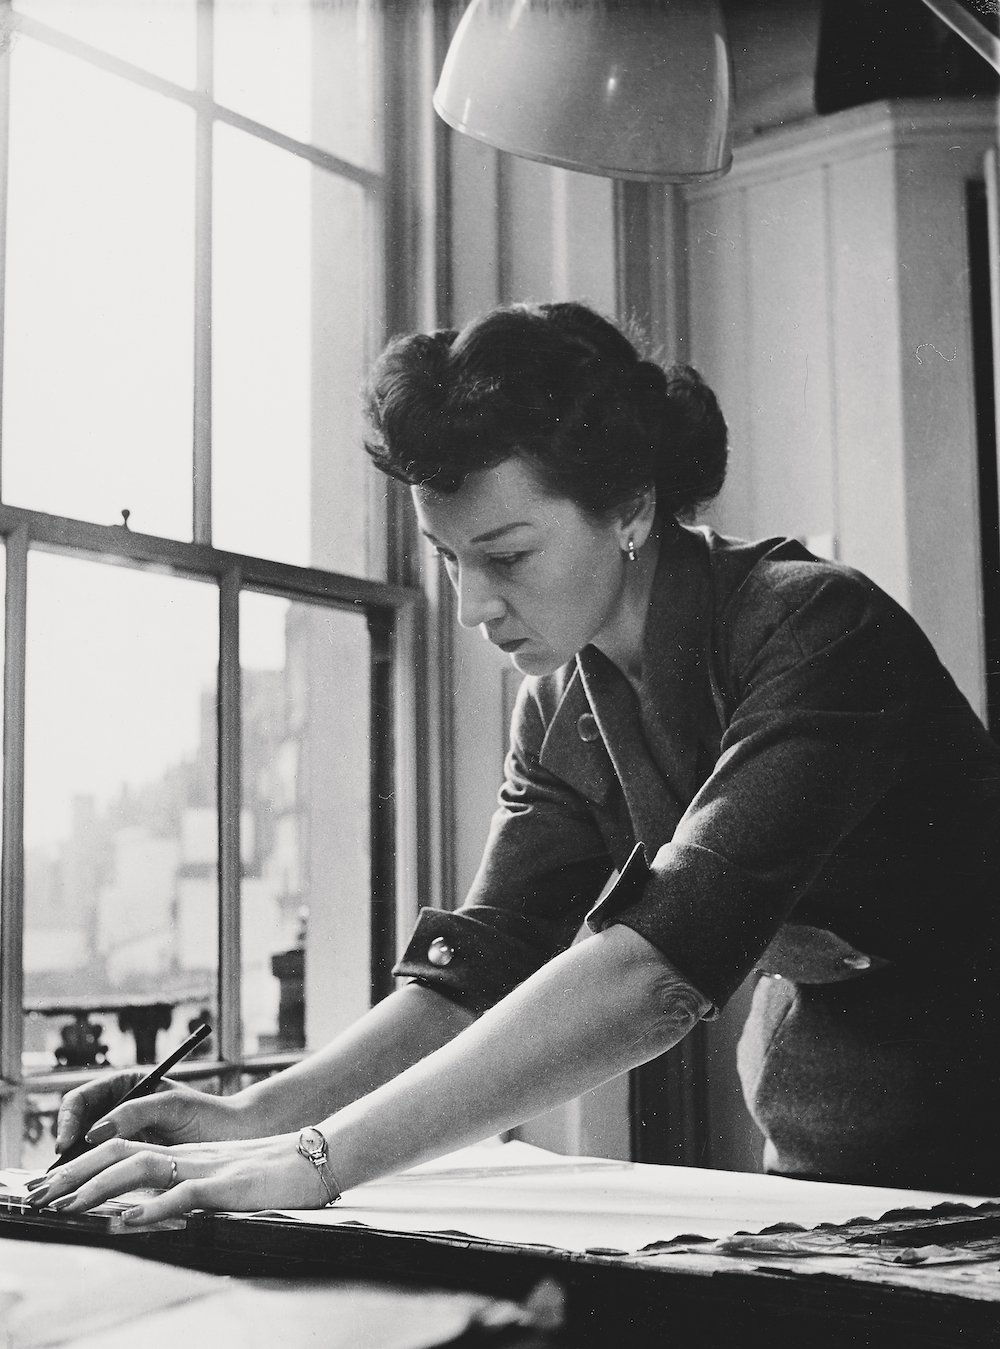 Lucienne Day © The Robin & Lucienne Day Foundation/photograph: John Gay